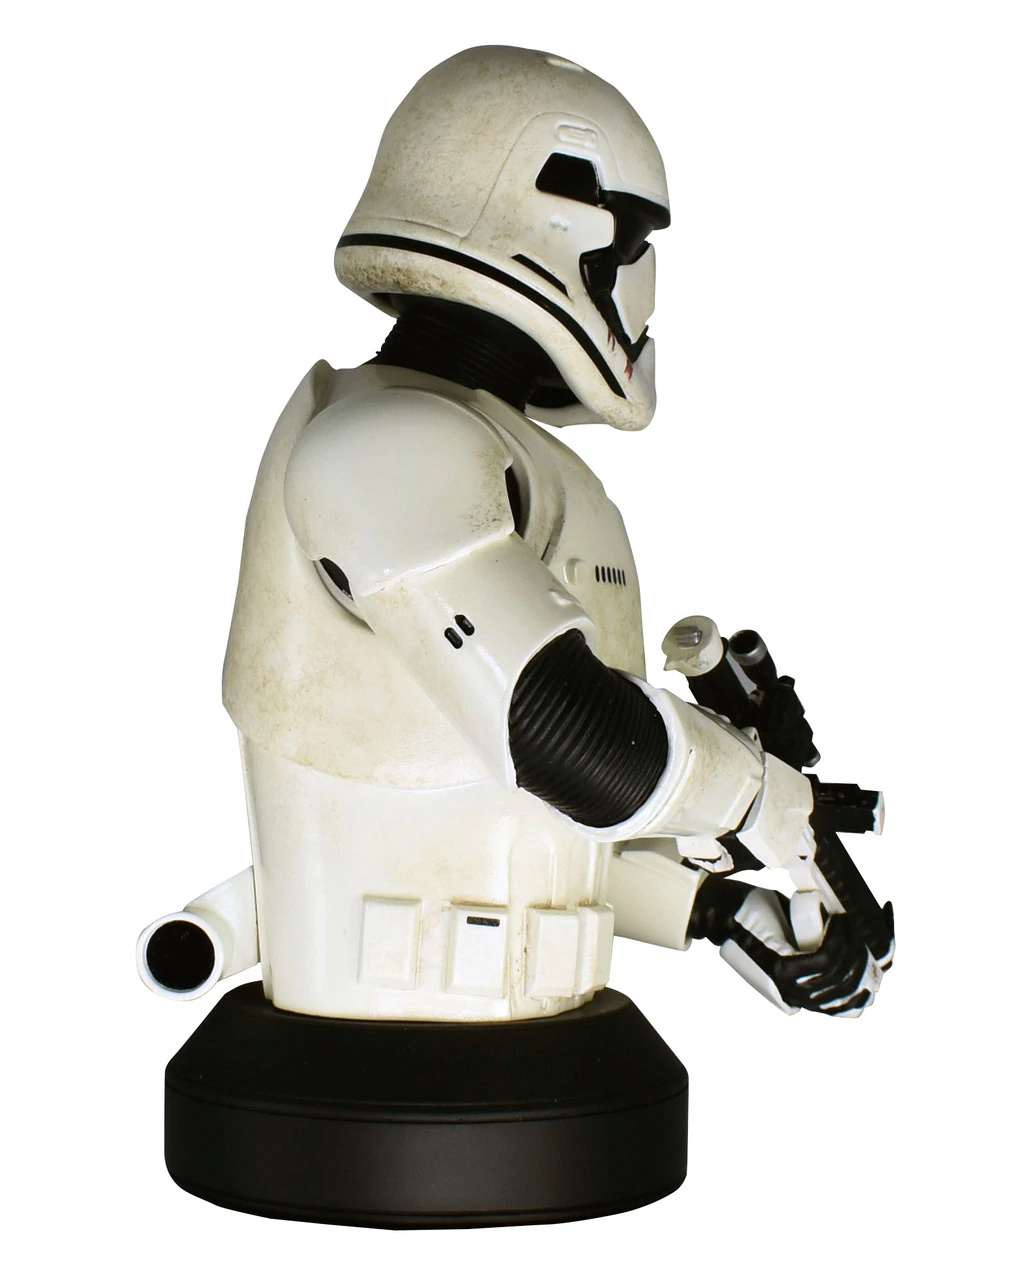 Finn (FN-2187) Mini Bust - The Force Awakens - Gentle Giant Finn_m14